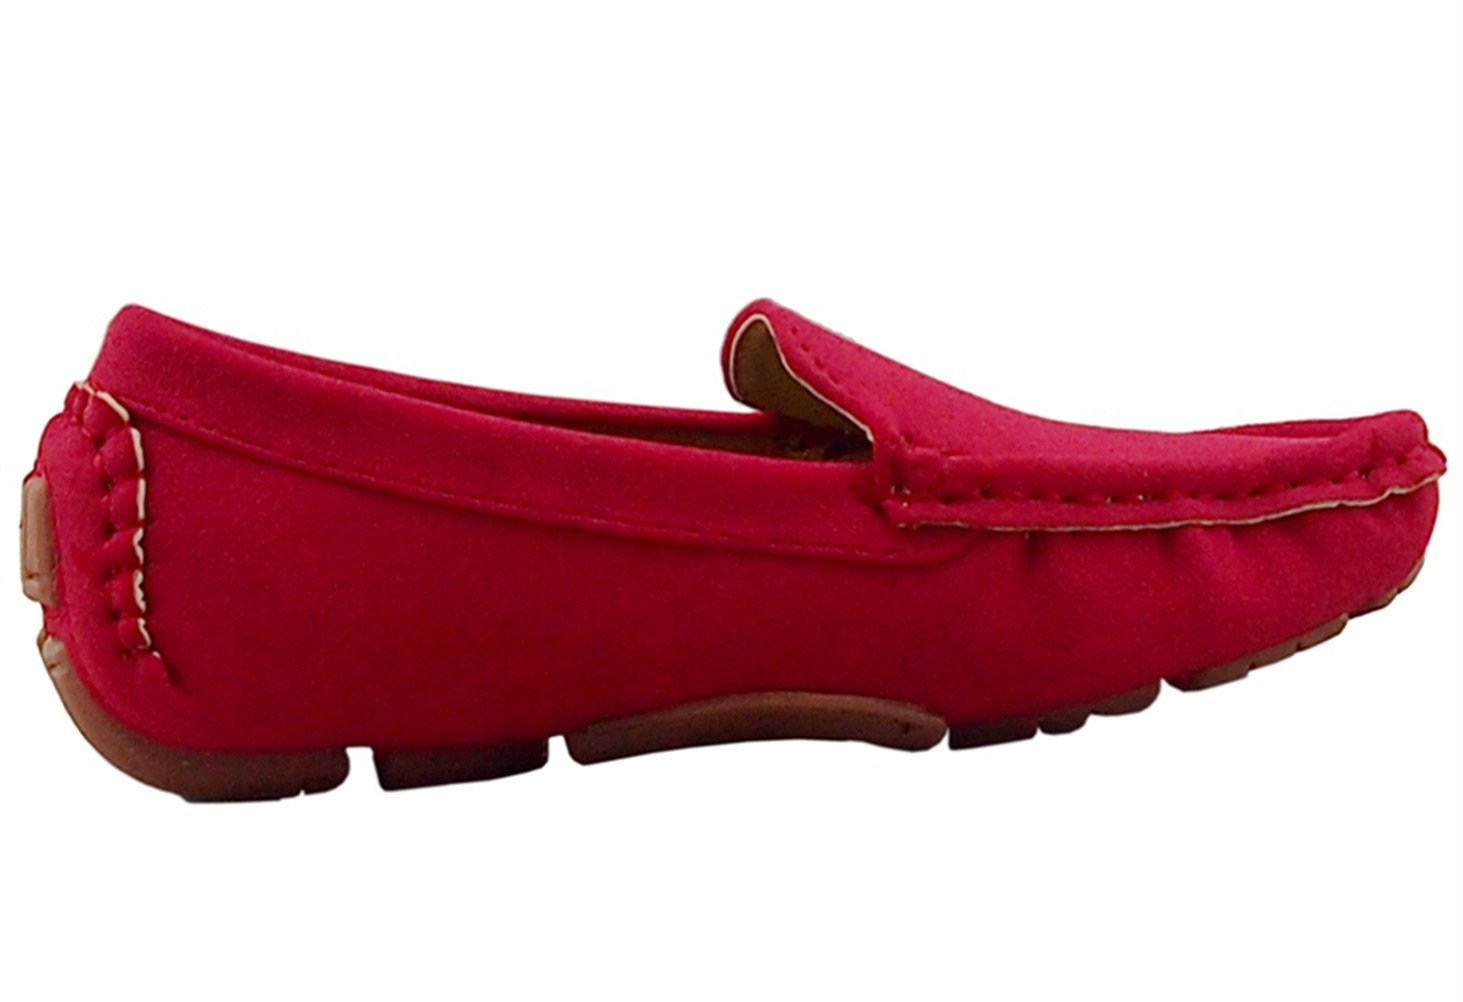 DADAWEN Girl's Boy's Suede Slip-on Loafers Oxford Shoes Red US Size 6.5 M Toddler by DADAWEN (Image #4)